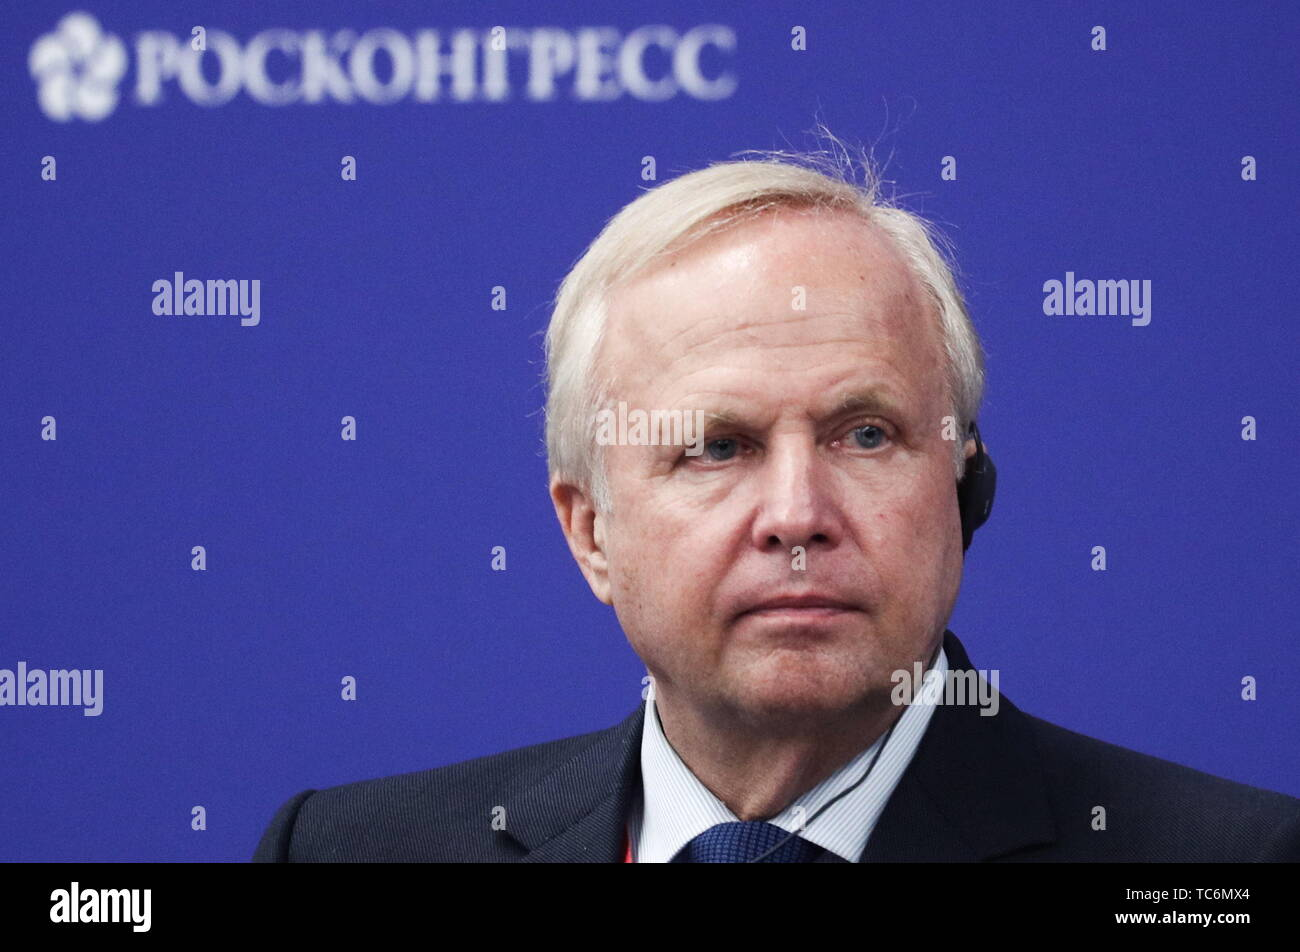 St Petersburg, Russia. 06th June, 2019. ST PETERSBURG, RUSSIA - JUNE 6, 2019: BP CEO Robert Dudley at the Energy Panel session as part of the 2019 St Petersburg International Economic Forum (SPIEF), at the ExpoForum Convention and Exhibition Centre. Mikahil Tereshchenko/TASS Host Photo Agency Credit: ITAR-TASS News Agency/Alamy Live News - Stock Image